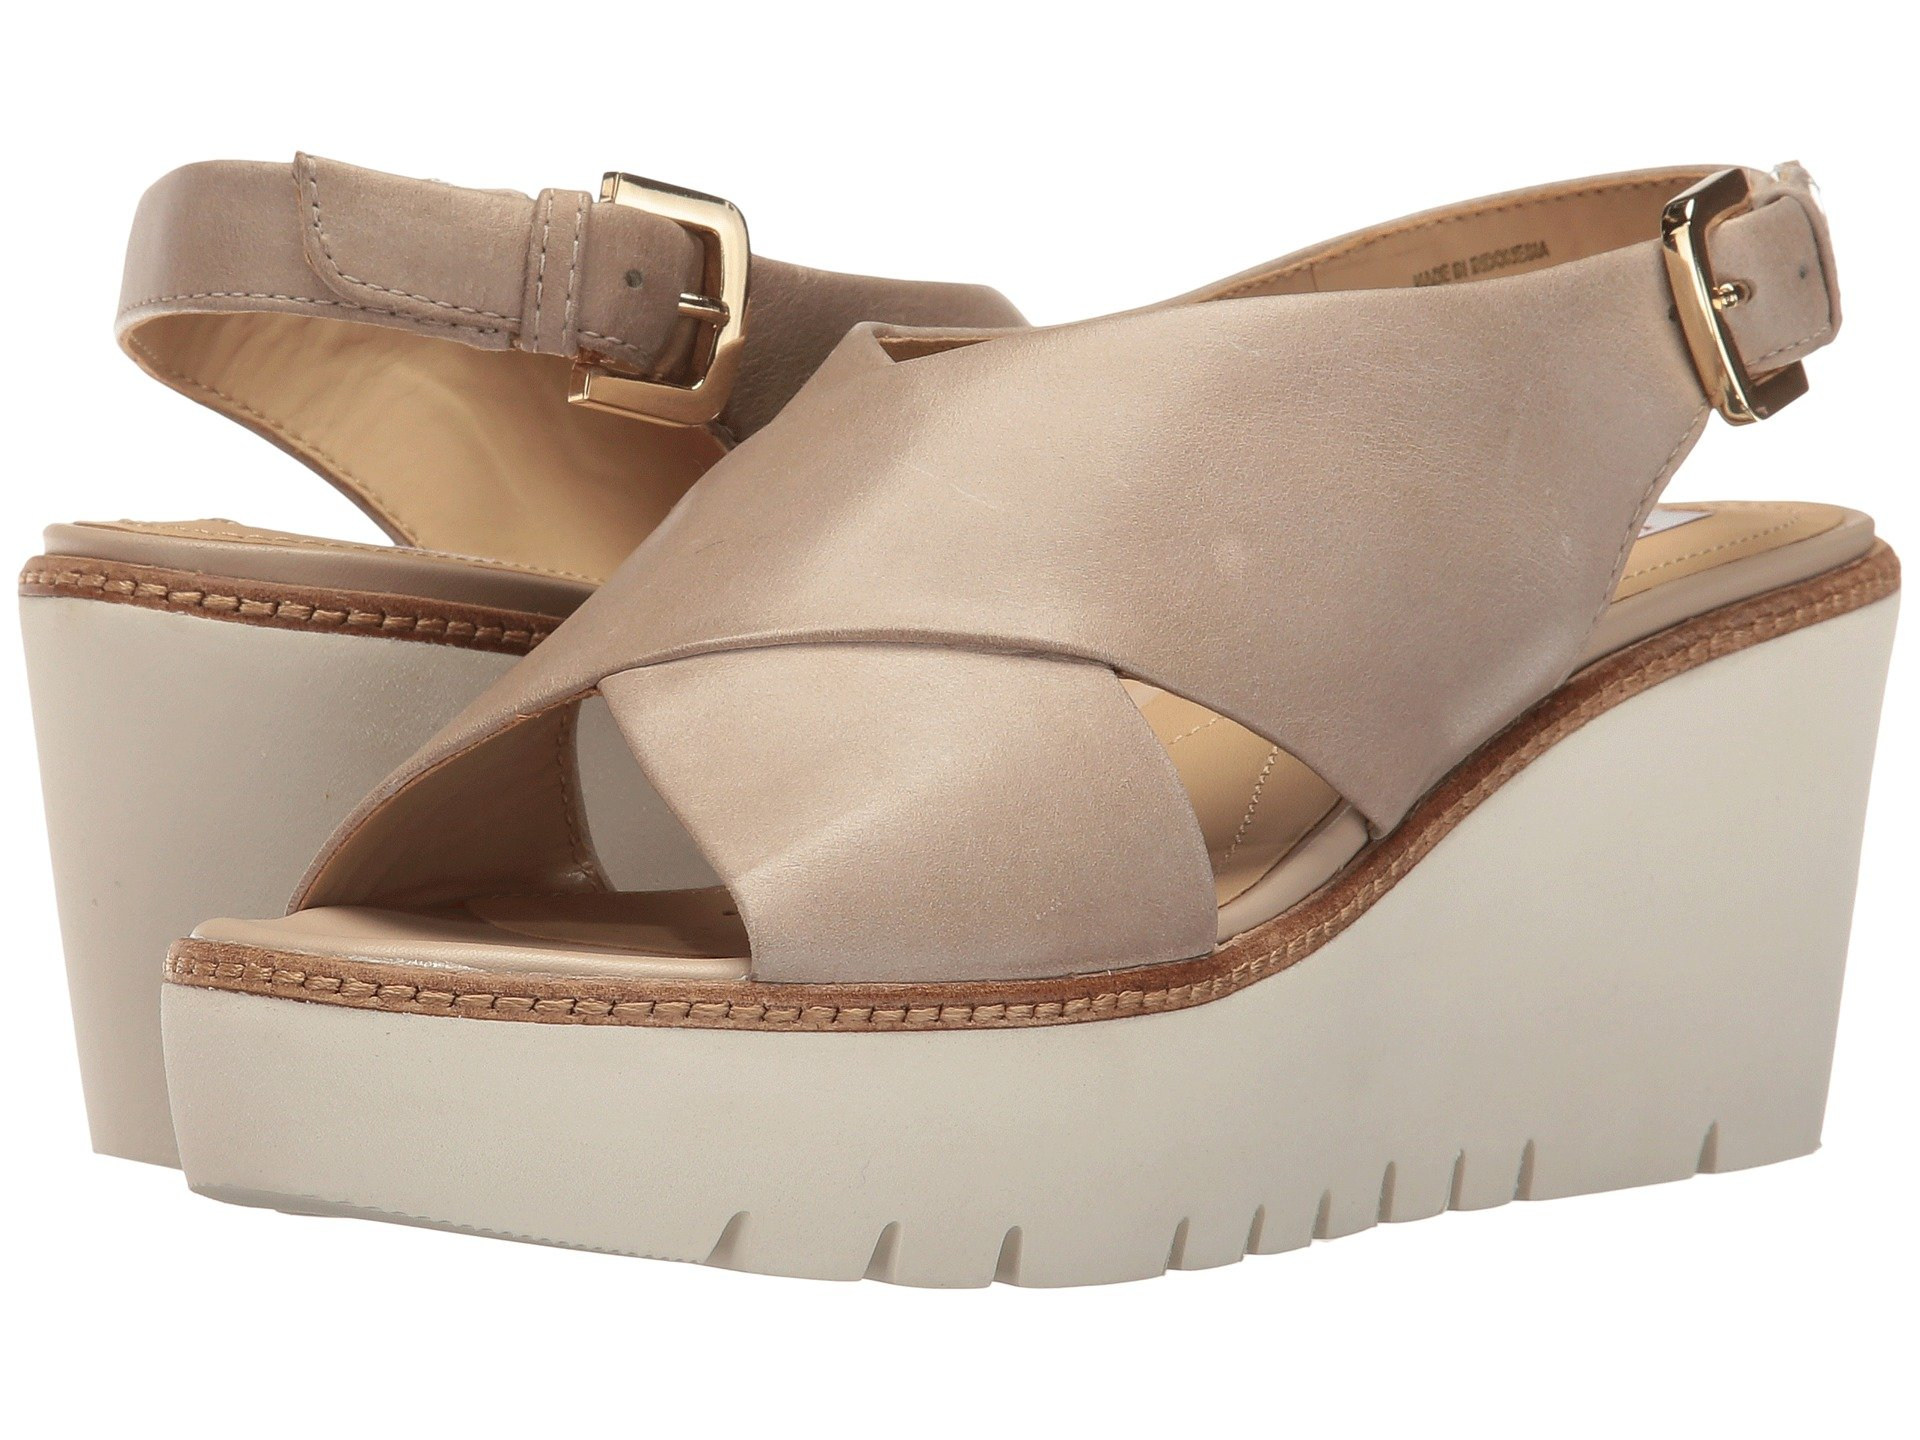 geox shoes usa coupon, Geox zaferly high heeled sandals